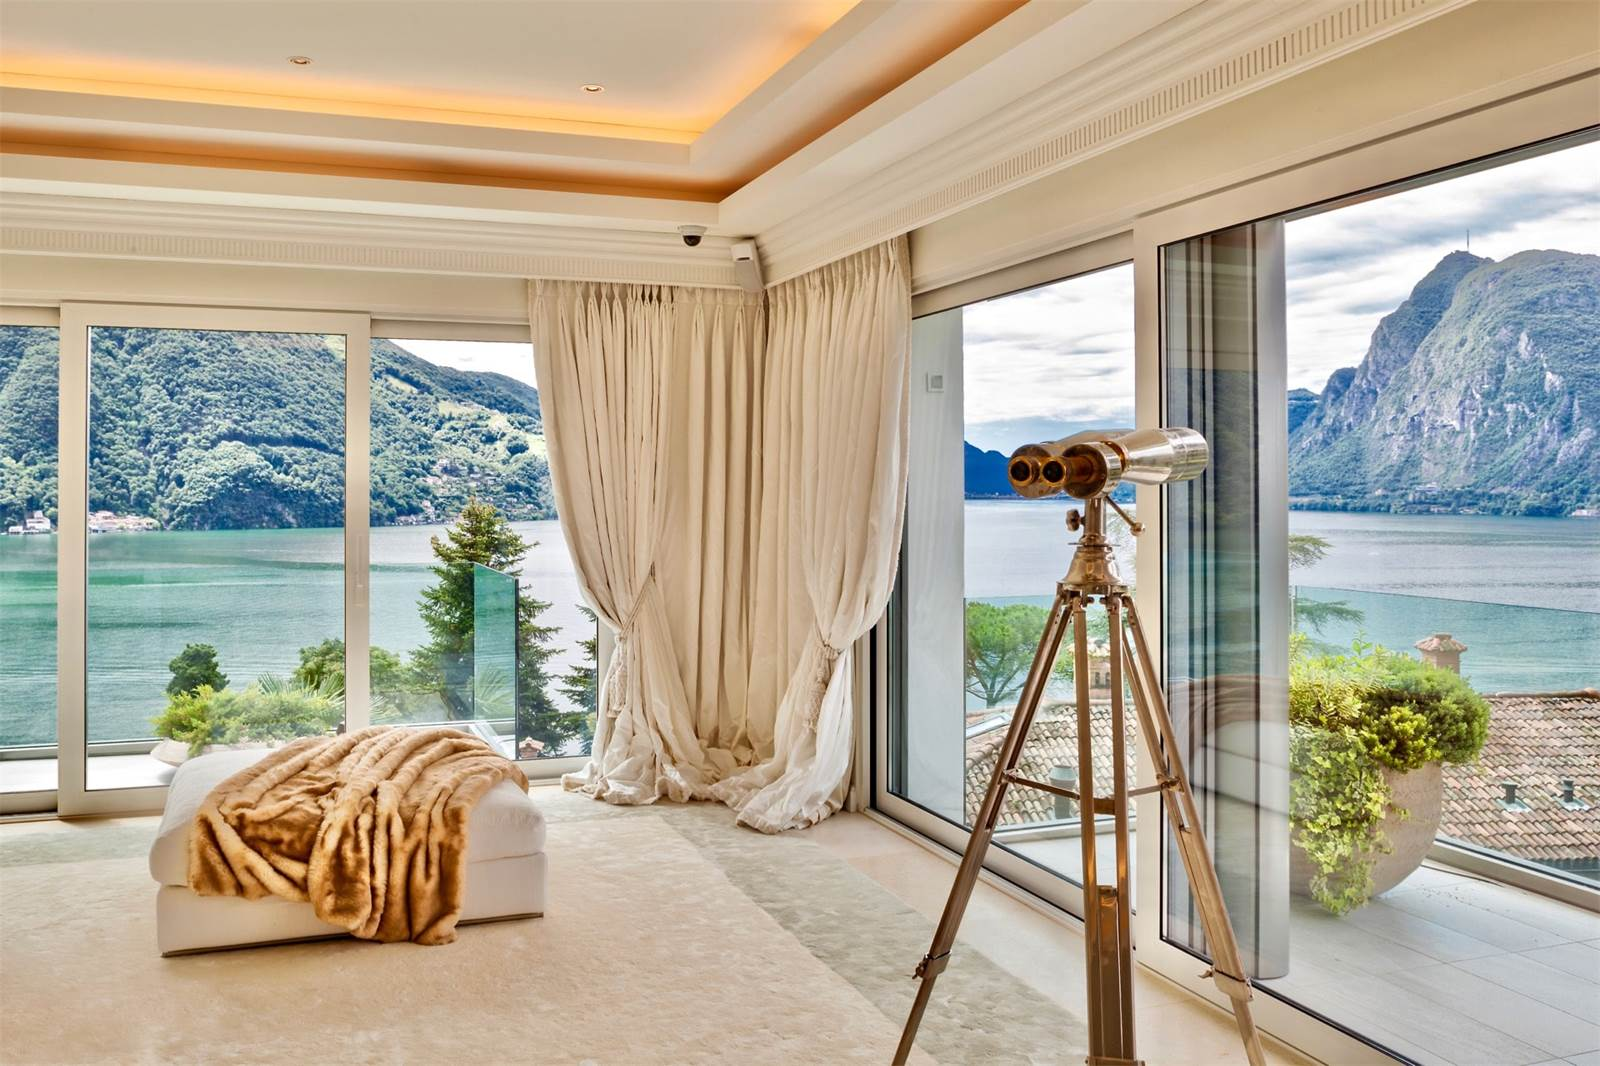 This luxury lair on the shores of Switzerland's Lake Lugano is as glamorous as they come. For an added layer of star appeal, a gold-plated telescope provides the finishing touch.